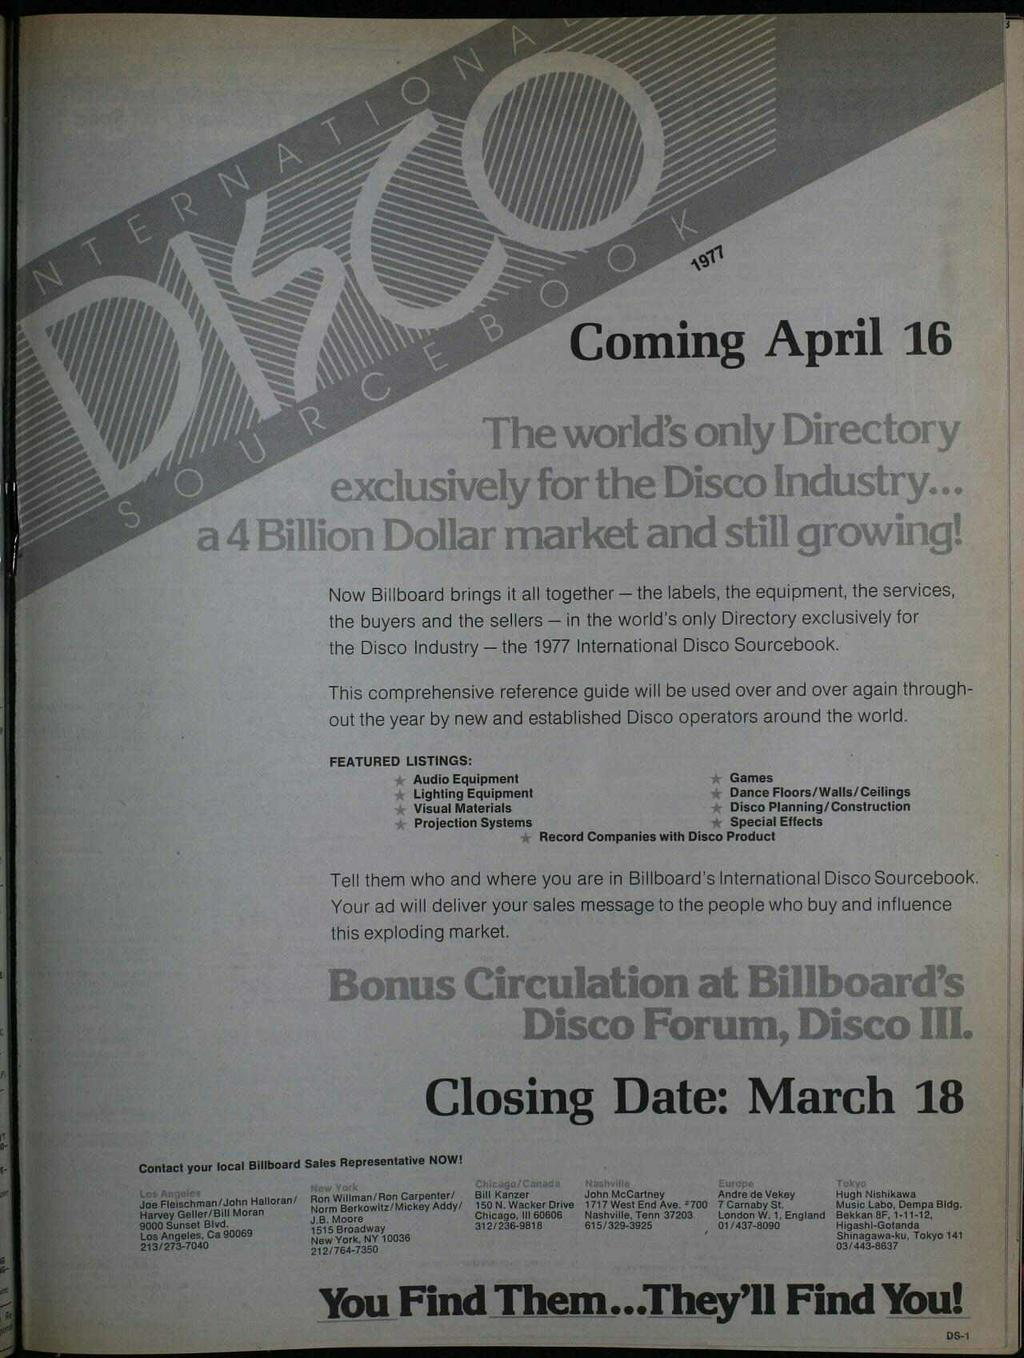 Coming April 16 The world's only Directory exclusively for the Disco ndustry... a 4 Billion Dollar market and still growing!